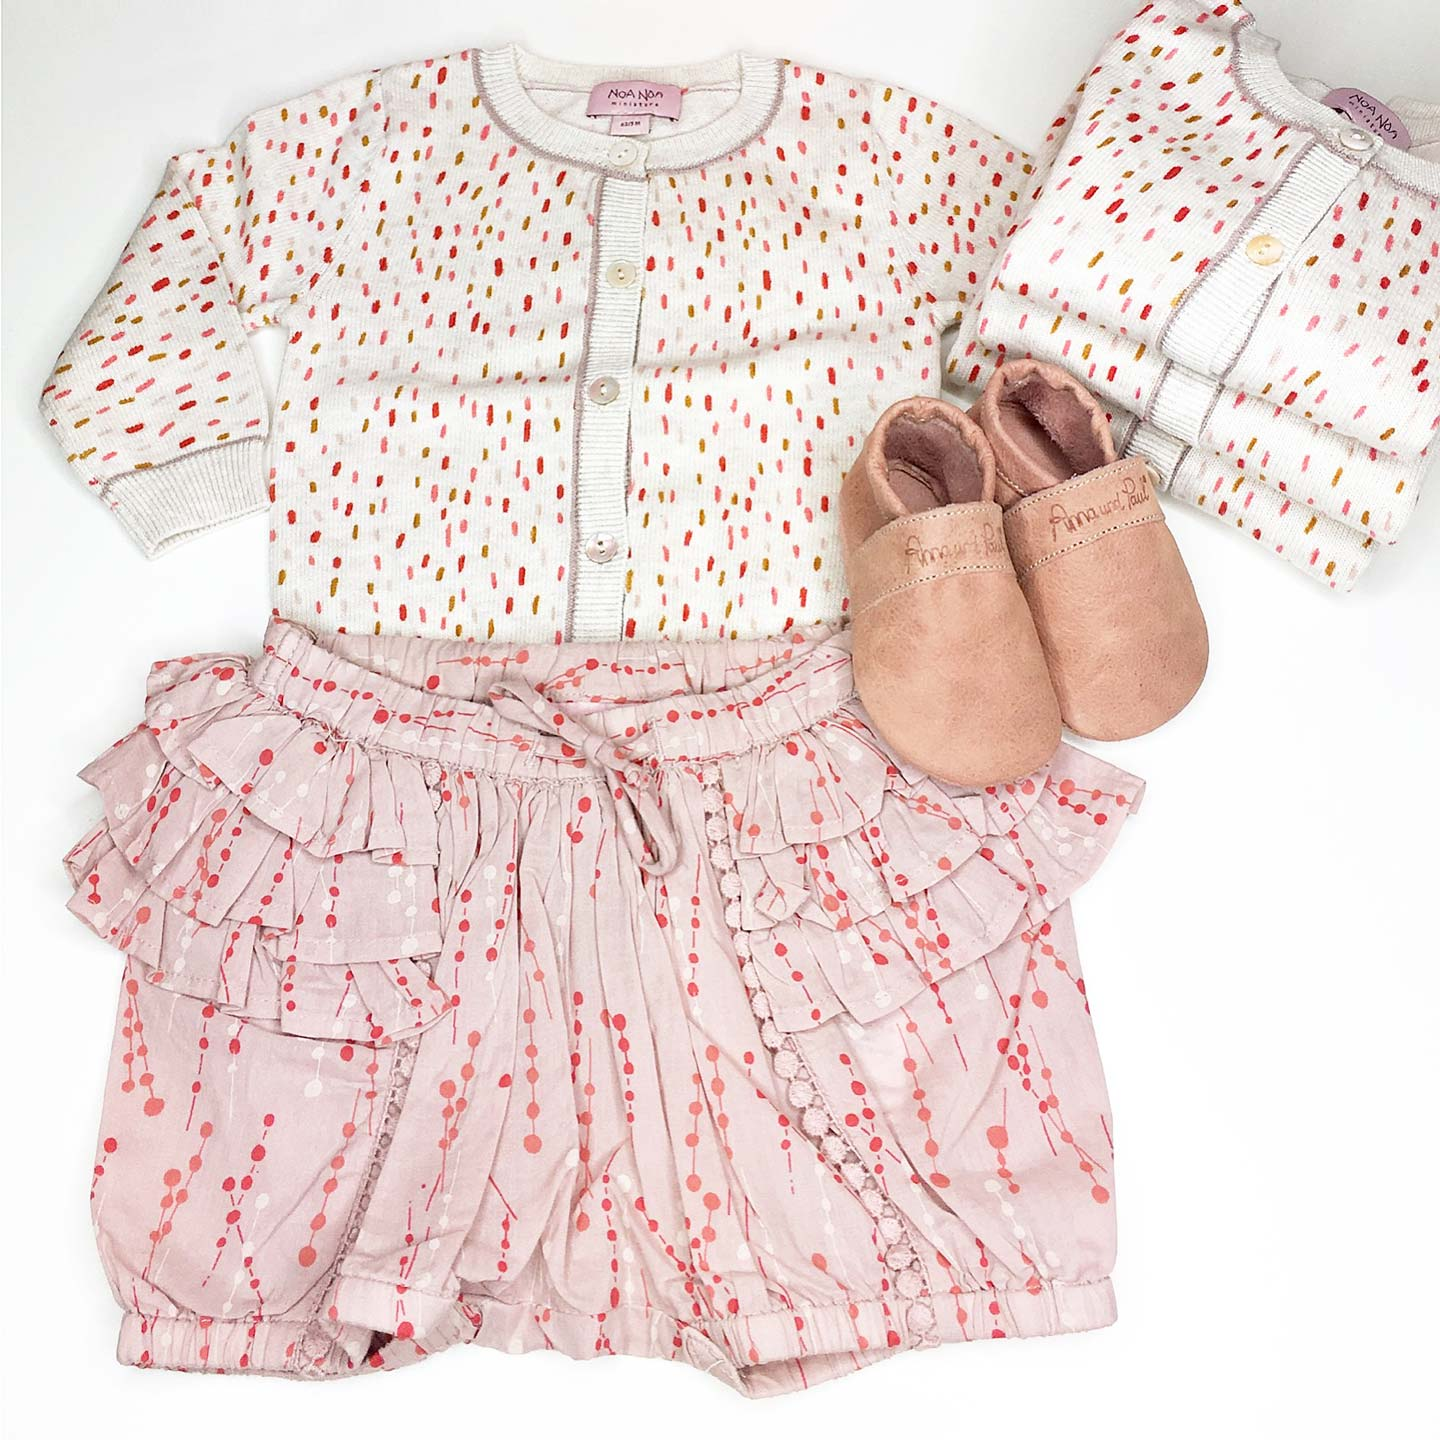 905429088 ... to buy children's clothing, the items can also be taken home and tried  on without time pressure, which our clients appreciate very much.